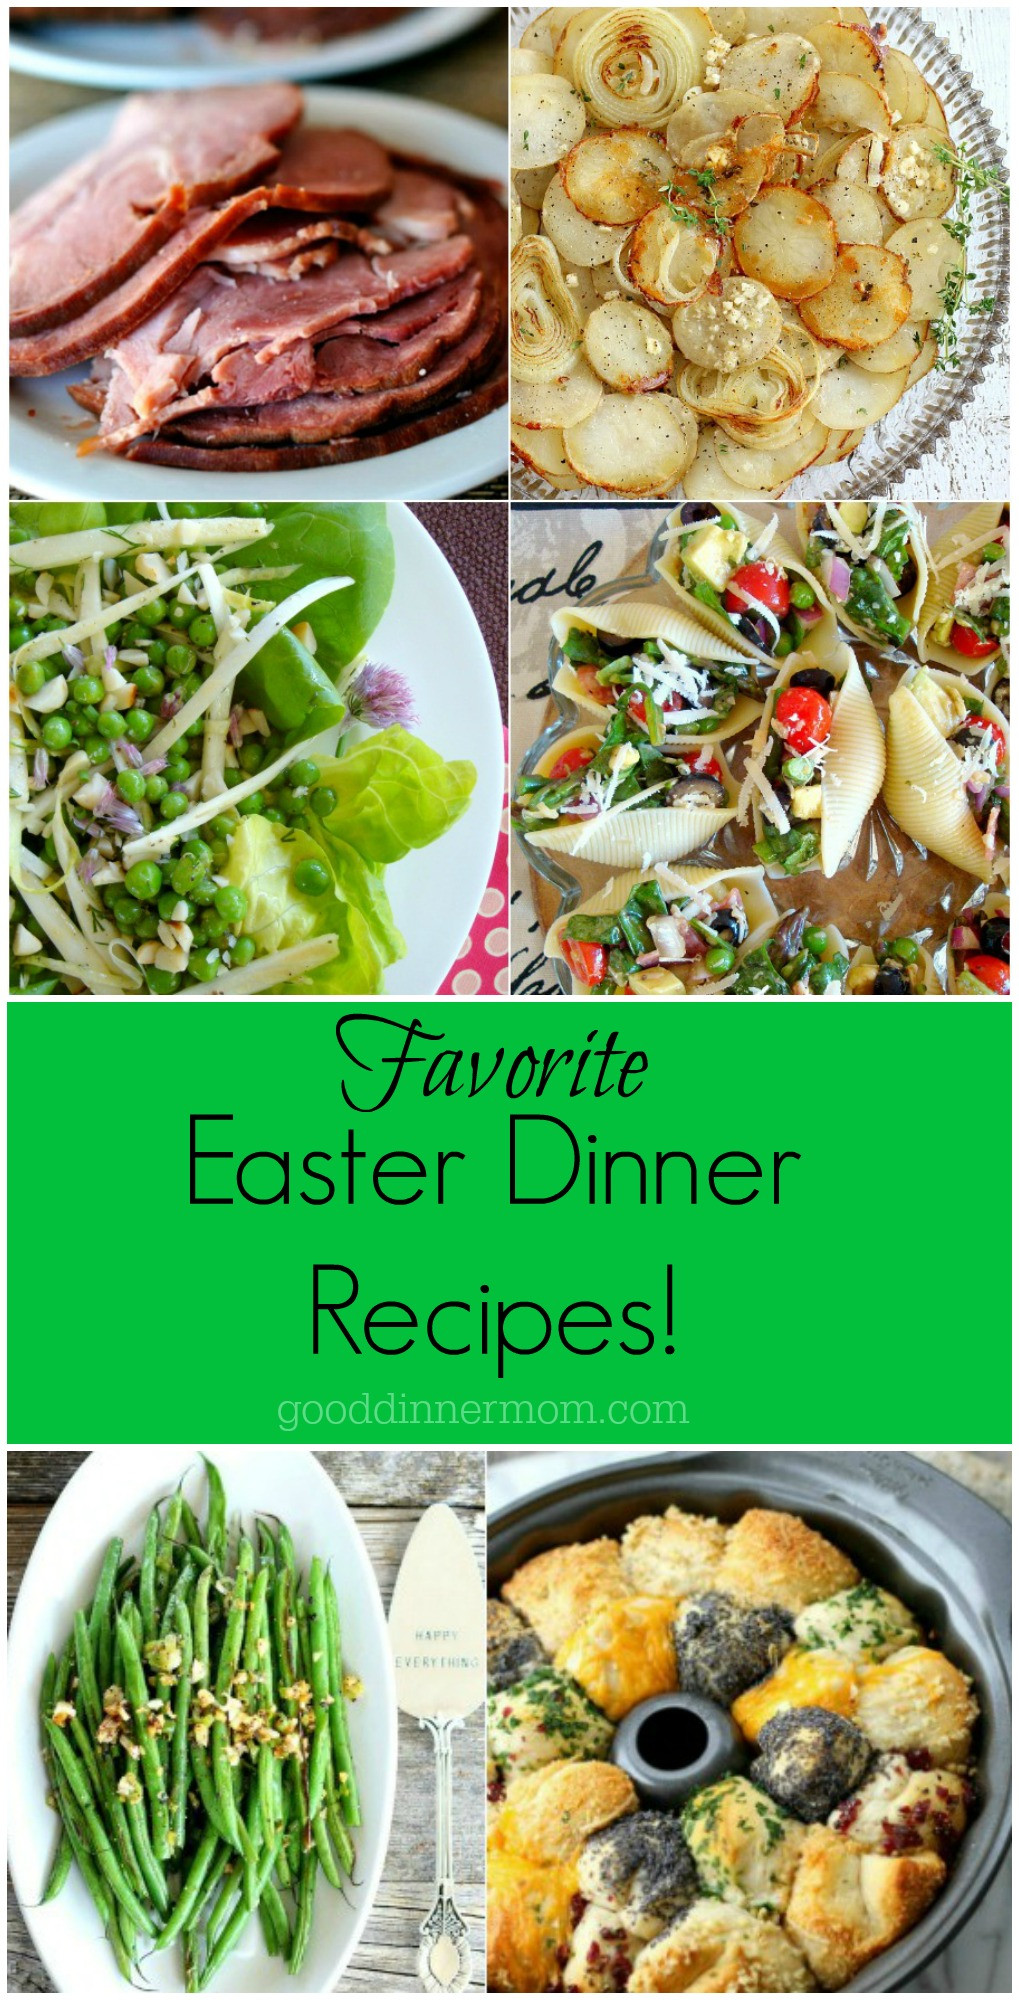 Good Easter Dinner Ideas  Easter Dinner Recipes – Good Dinner Mom